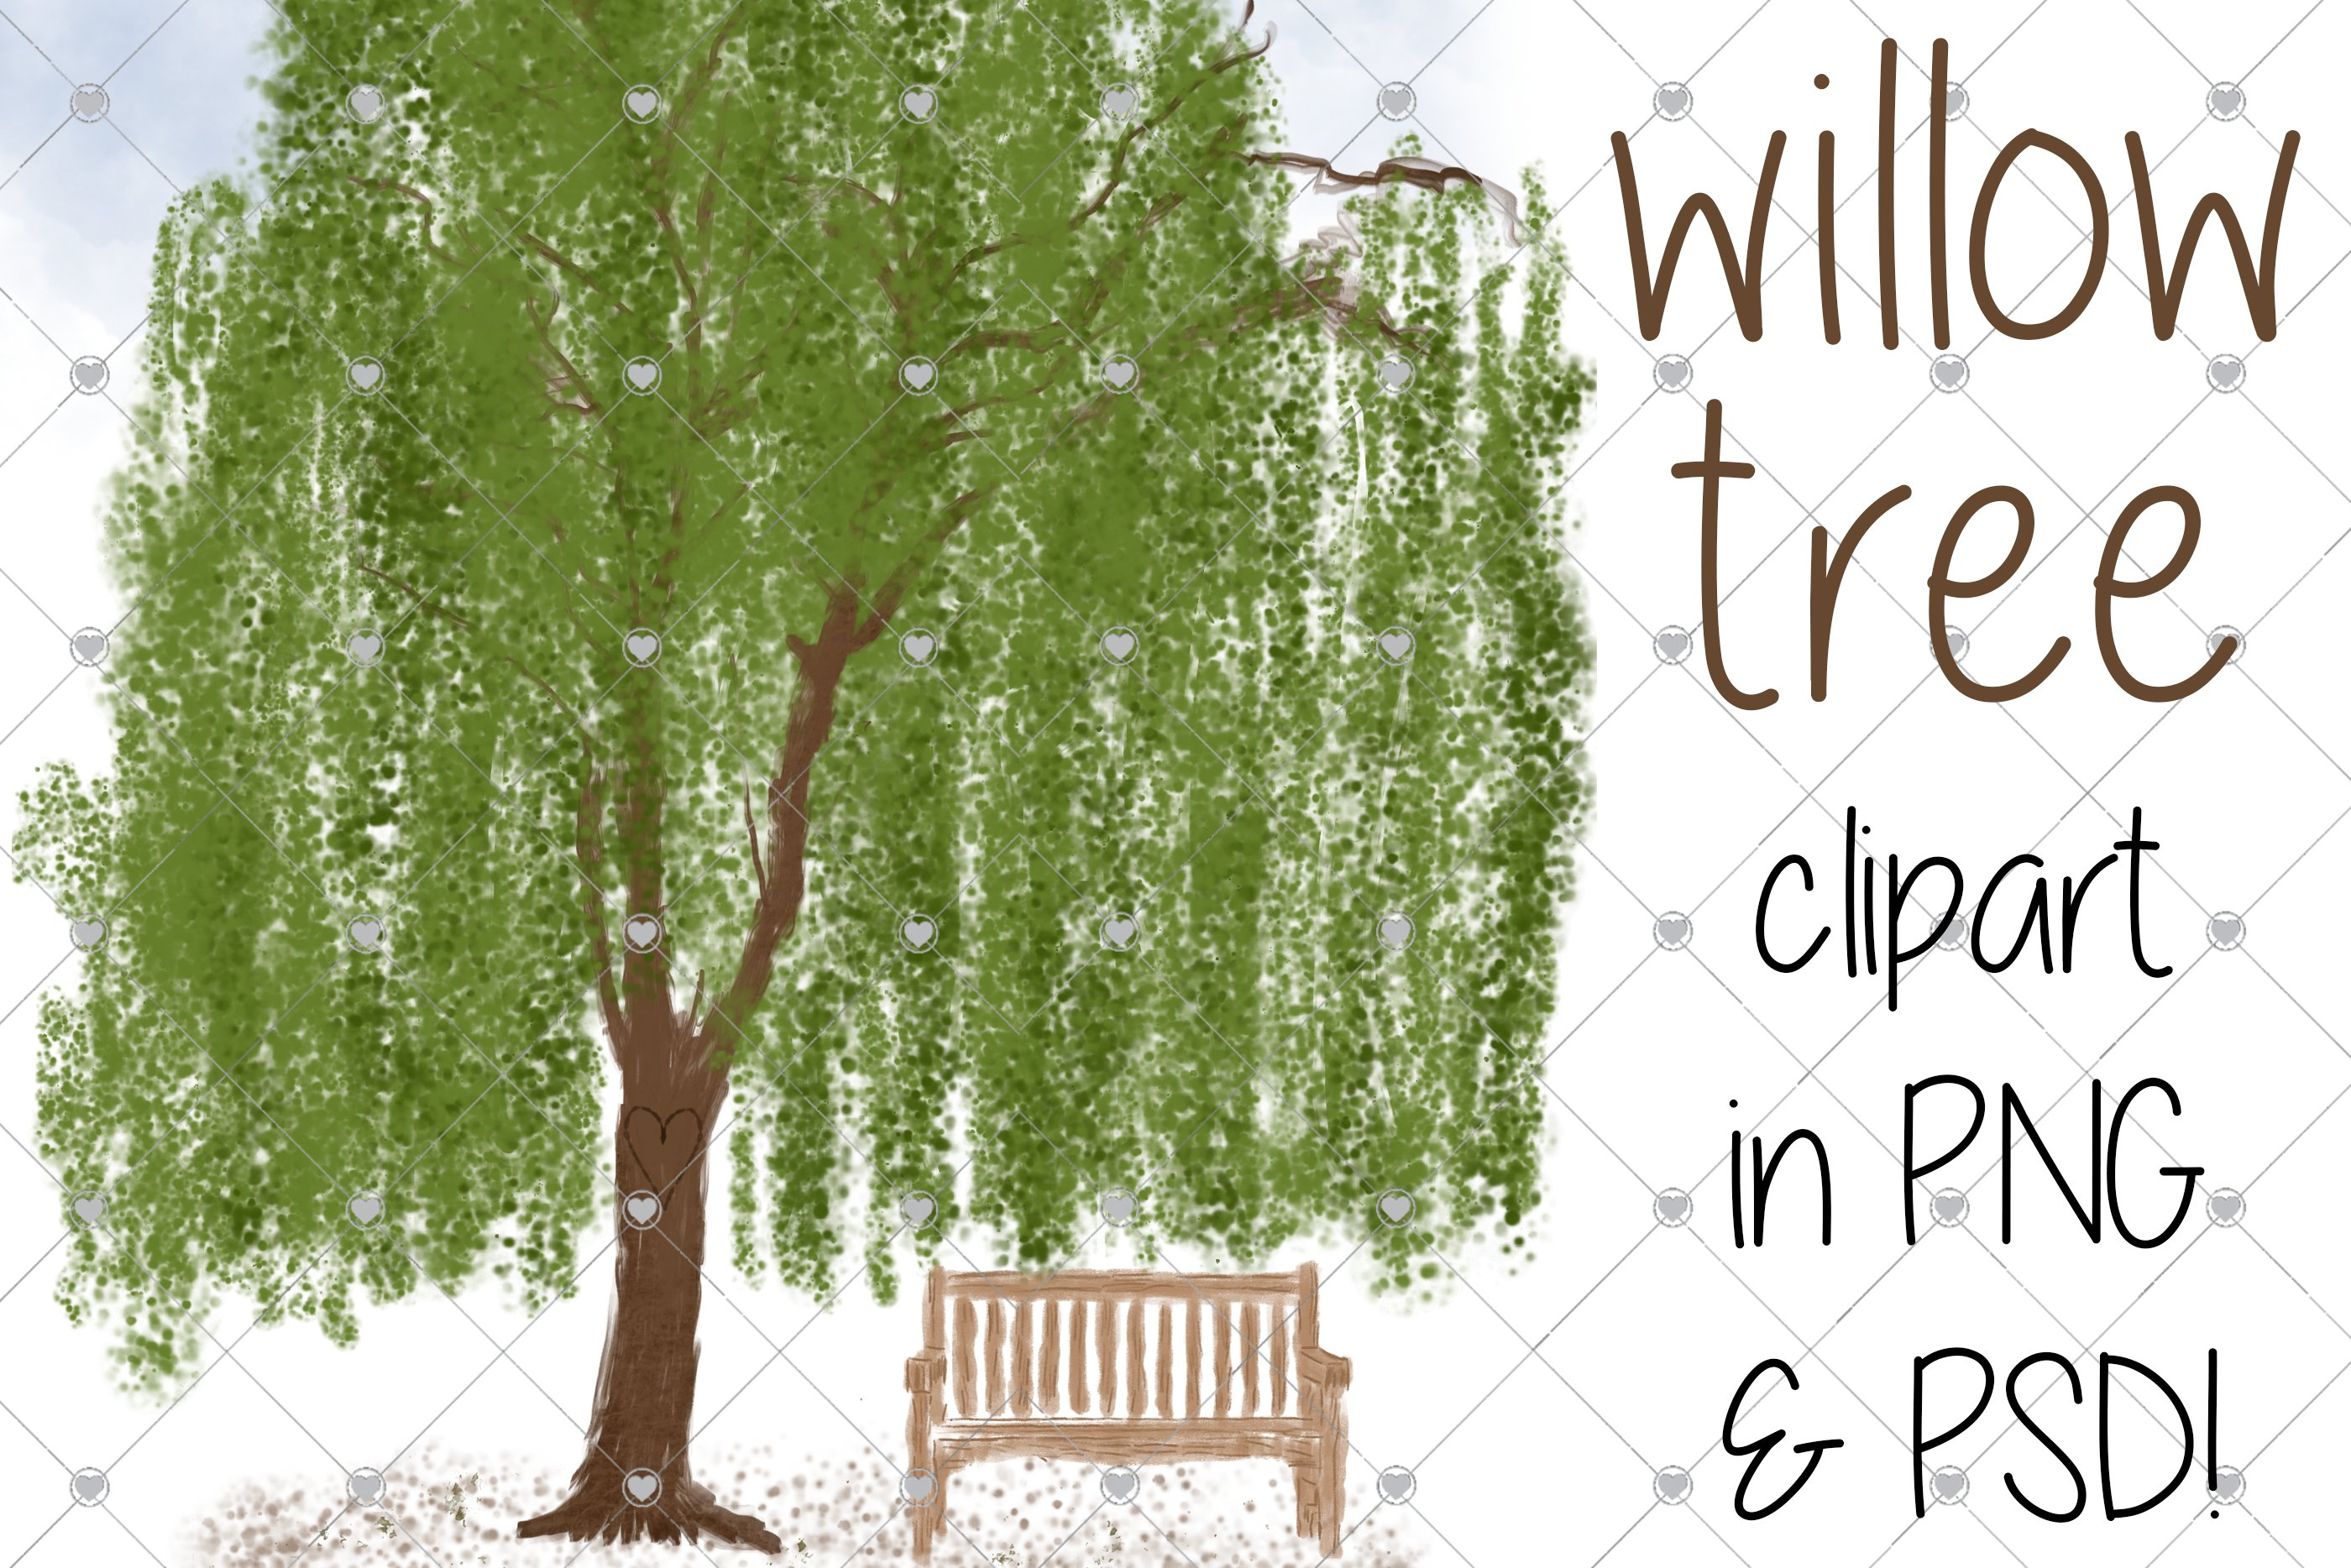 Willow Tree Trees Family Tree 883001 Objects Design Bundles